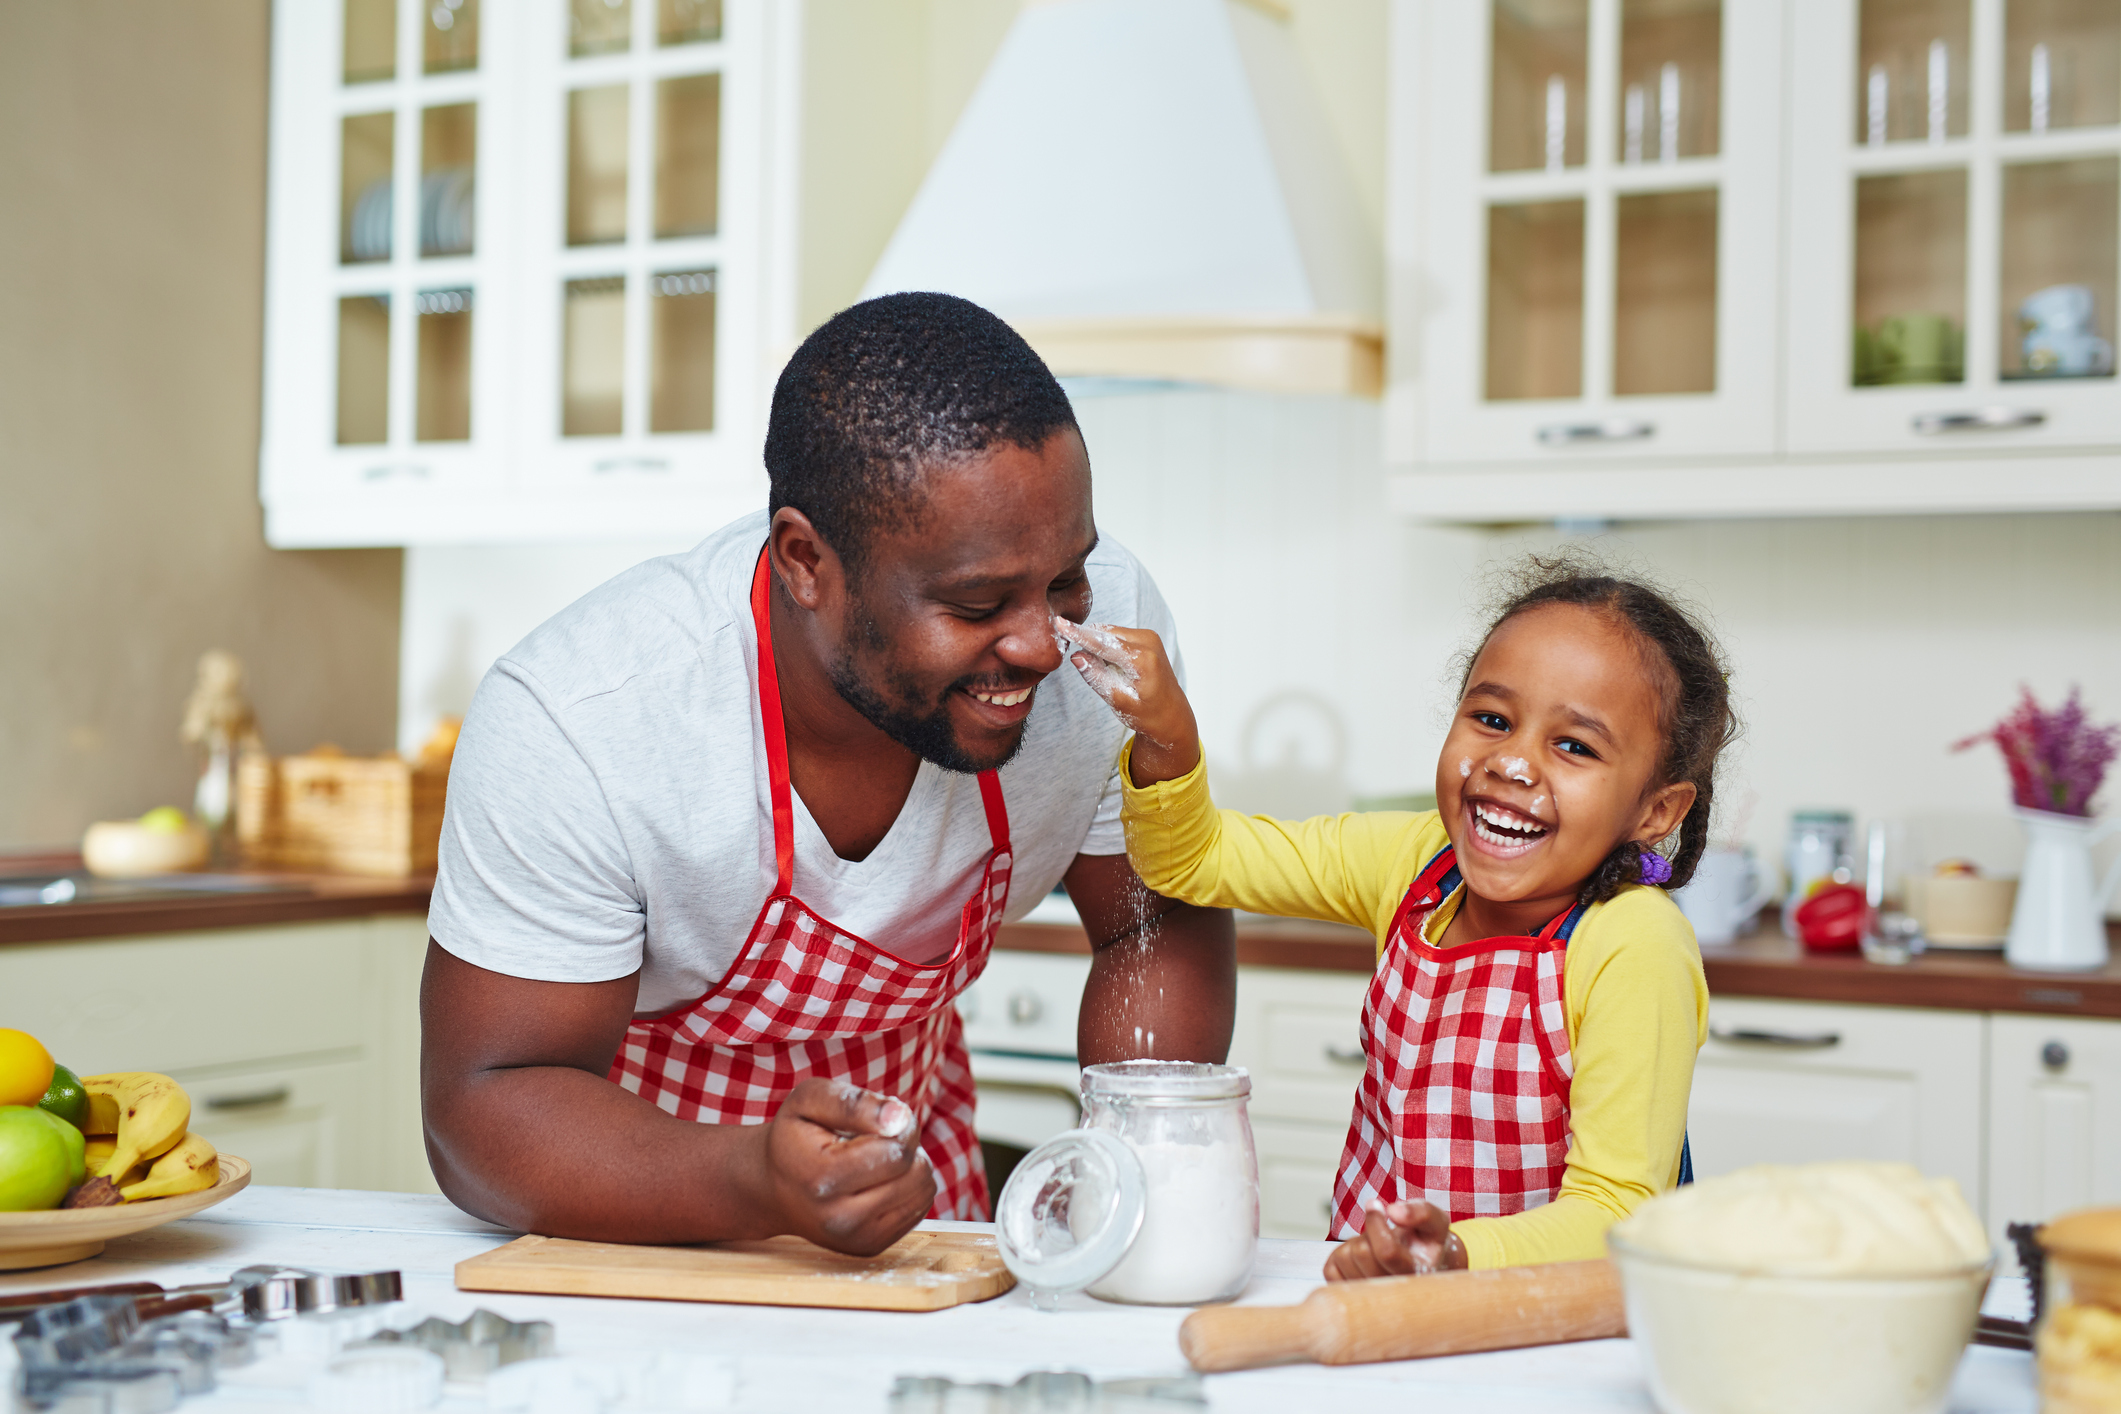 The Kitchen – A Place of Fun With Your Kids